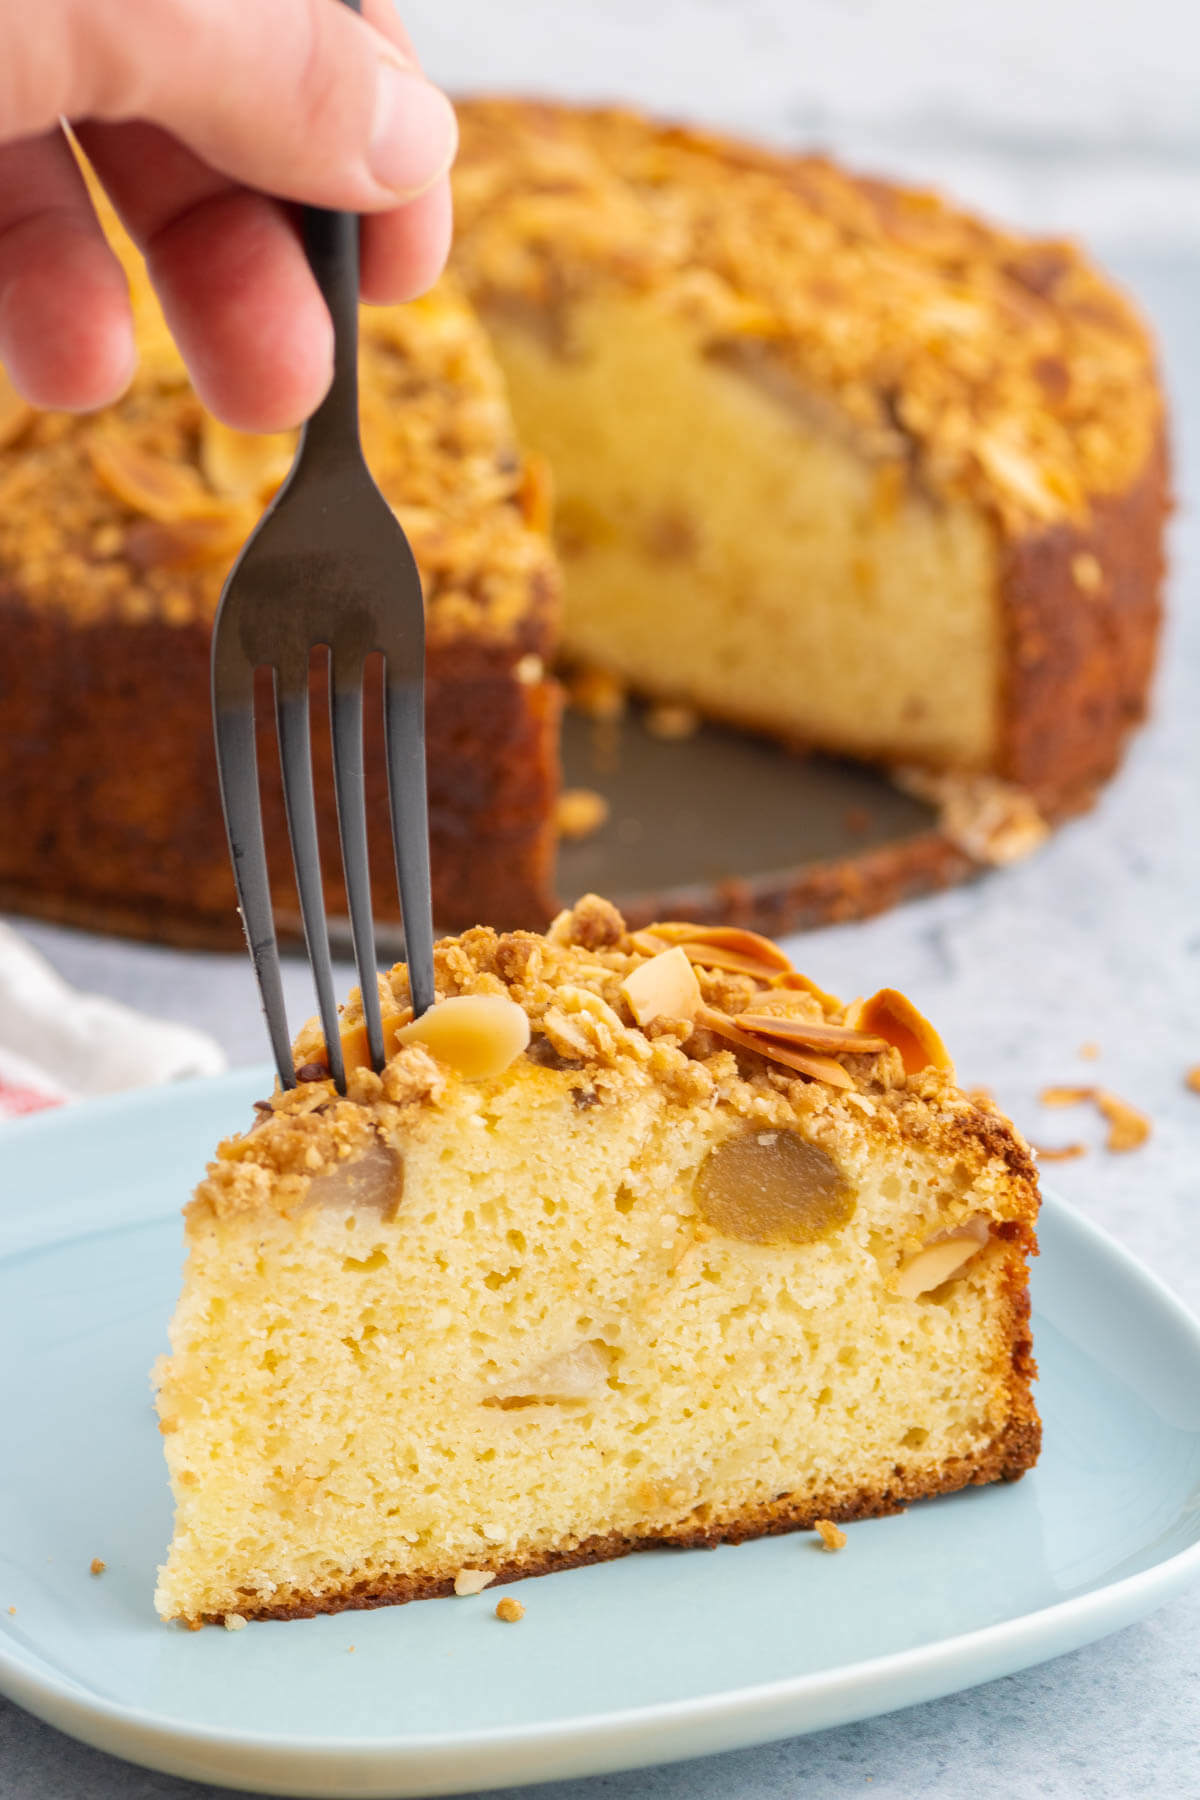 A fork cutting into a slice of Pear Ricotta Cake.